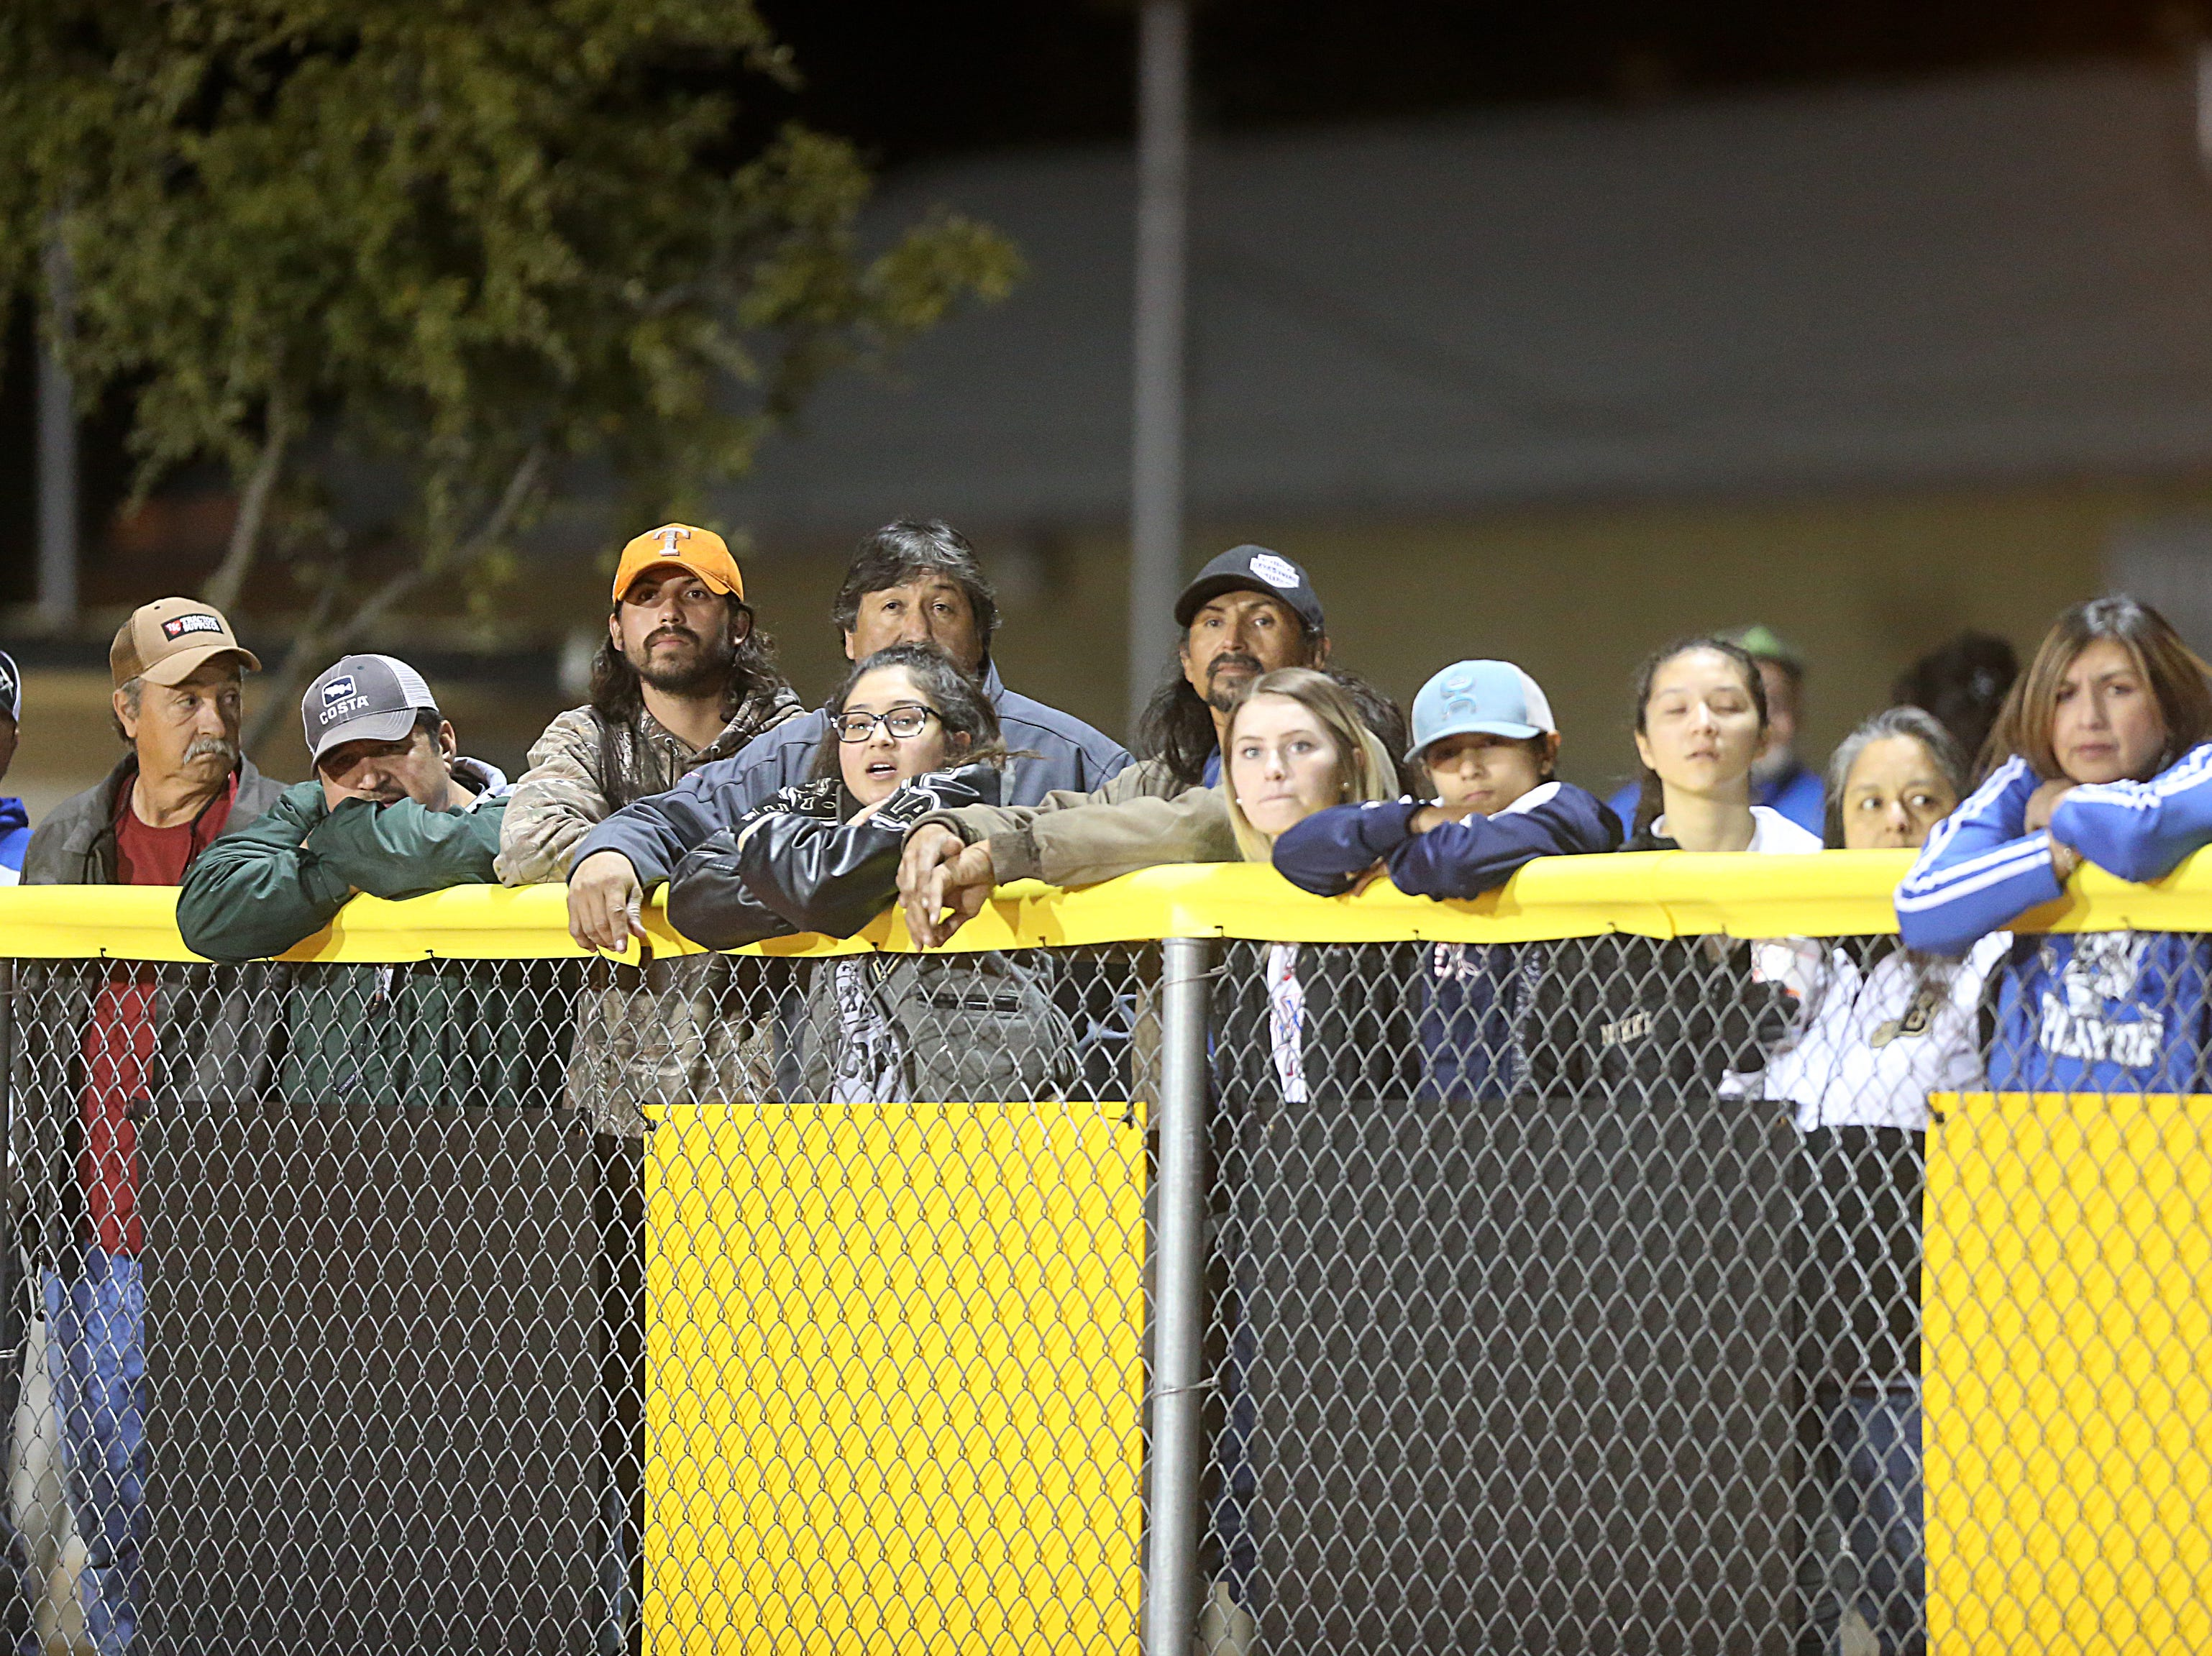 Eden Bulldog fans watch the game Friday, Nov. 16, 2018 as their team goes up against the Gorman Panthers in Santa Anna. Eden lost to Gorman 20 to 68.